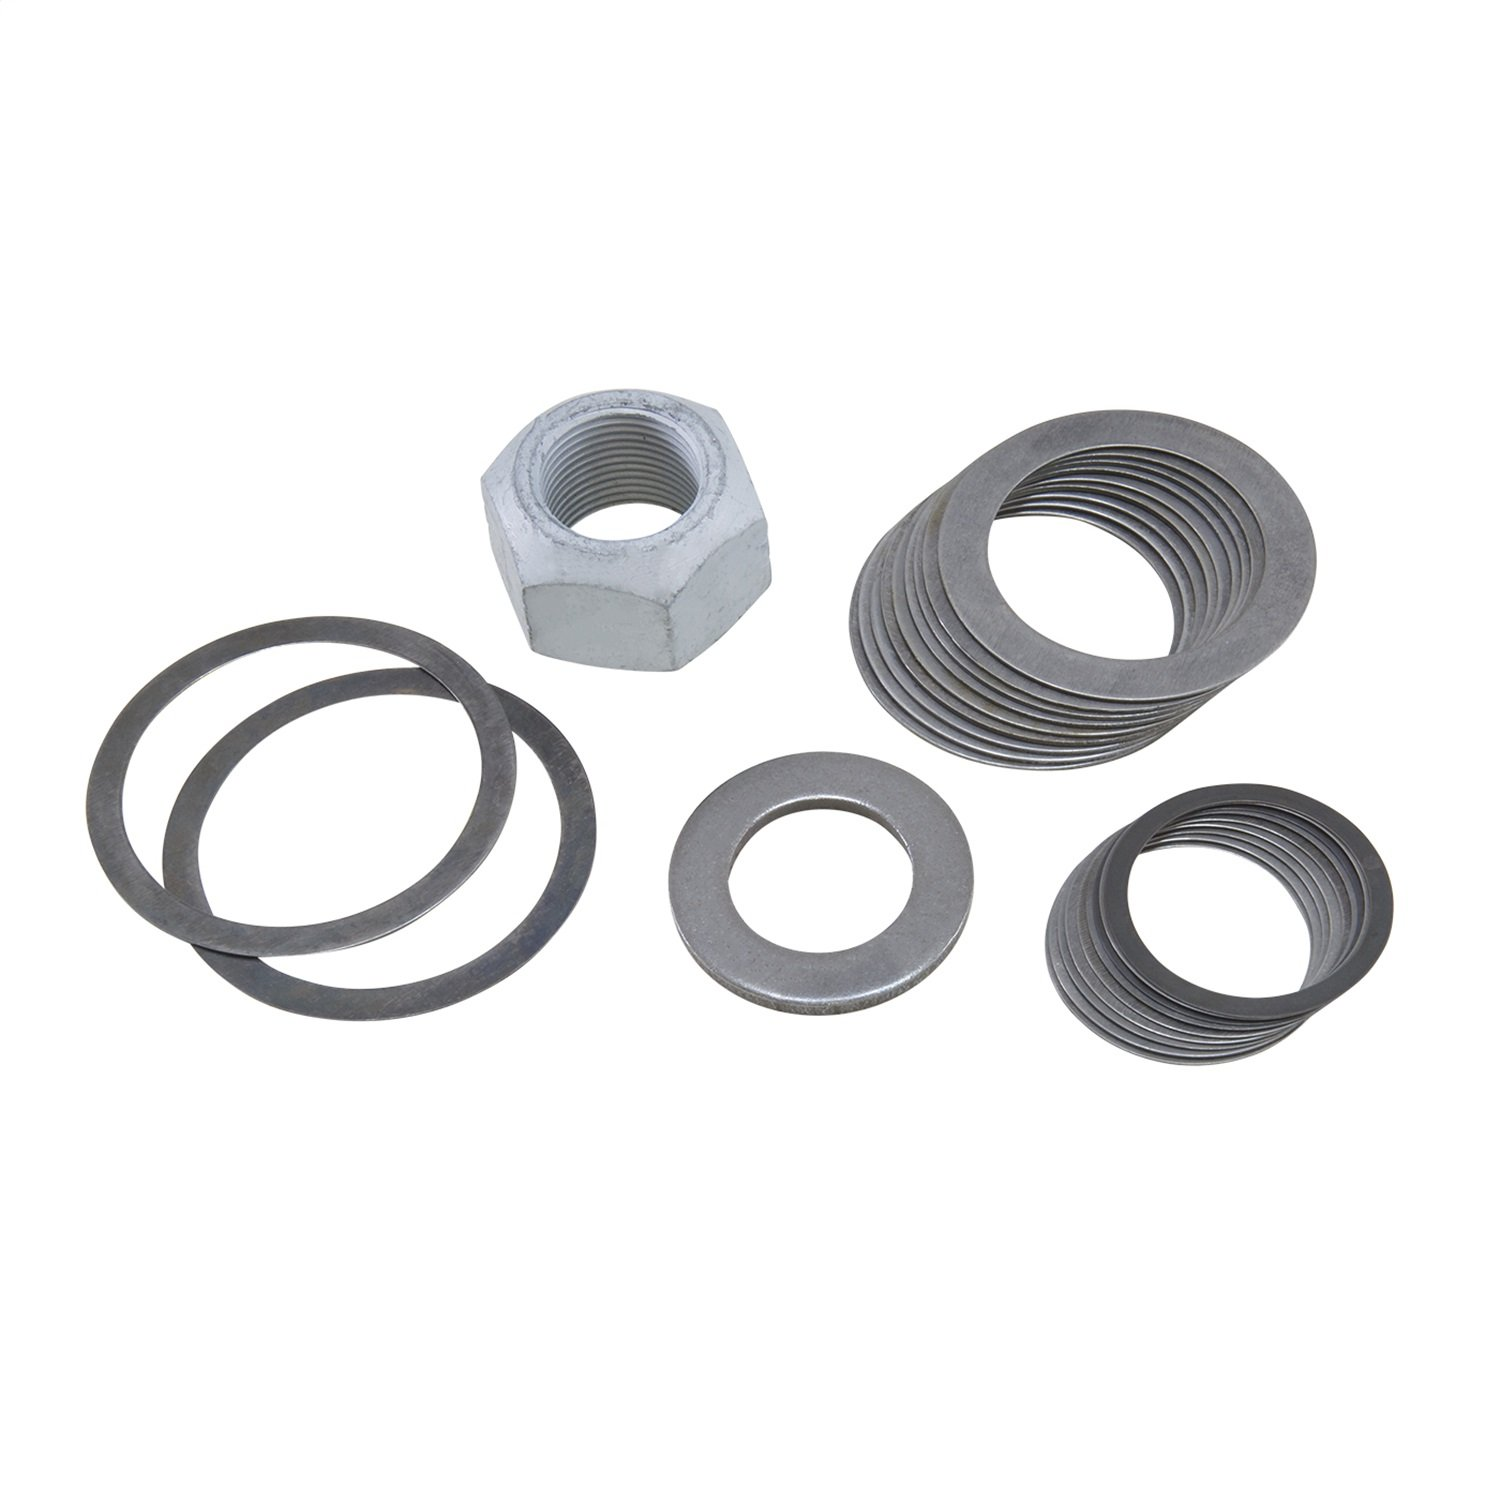 Yukon Gear & Axle (SK 707068) Replacement Shim Kit for Dana 80 Differential